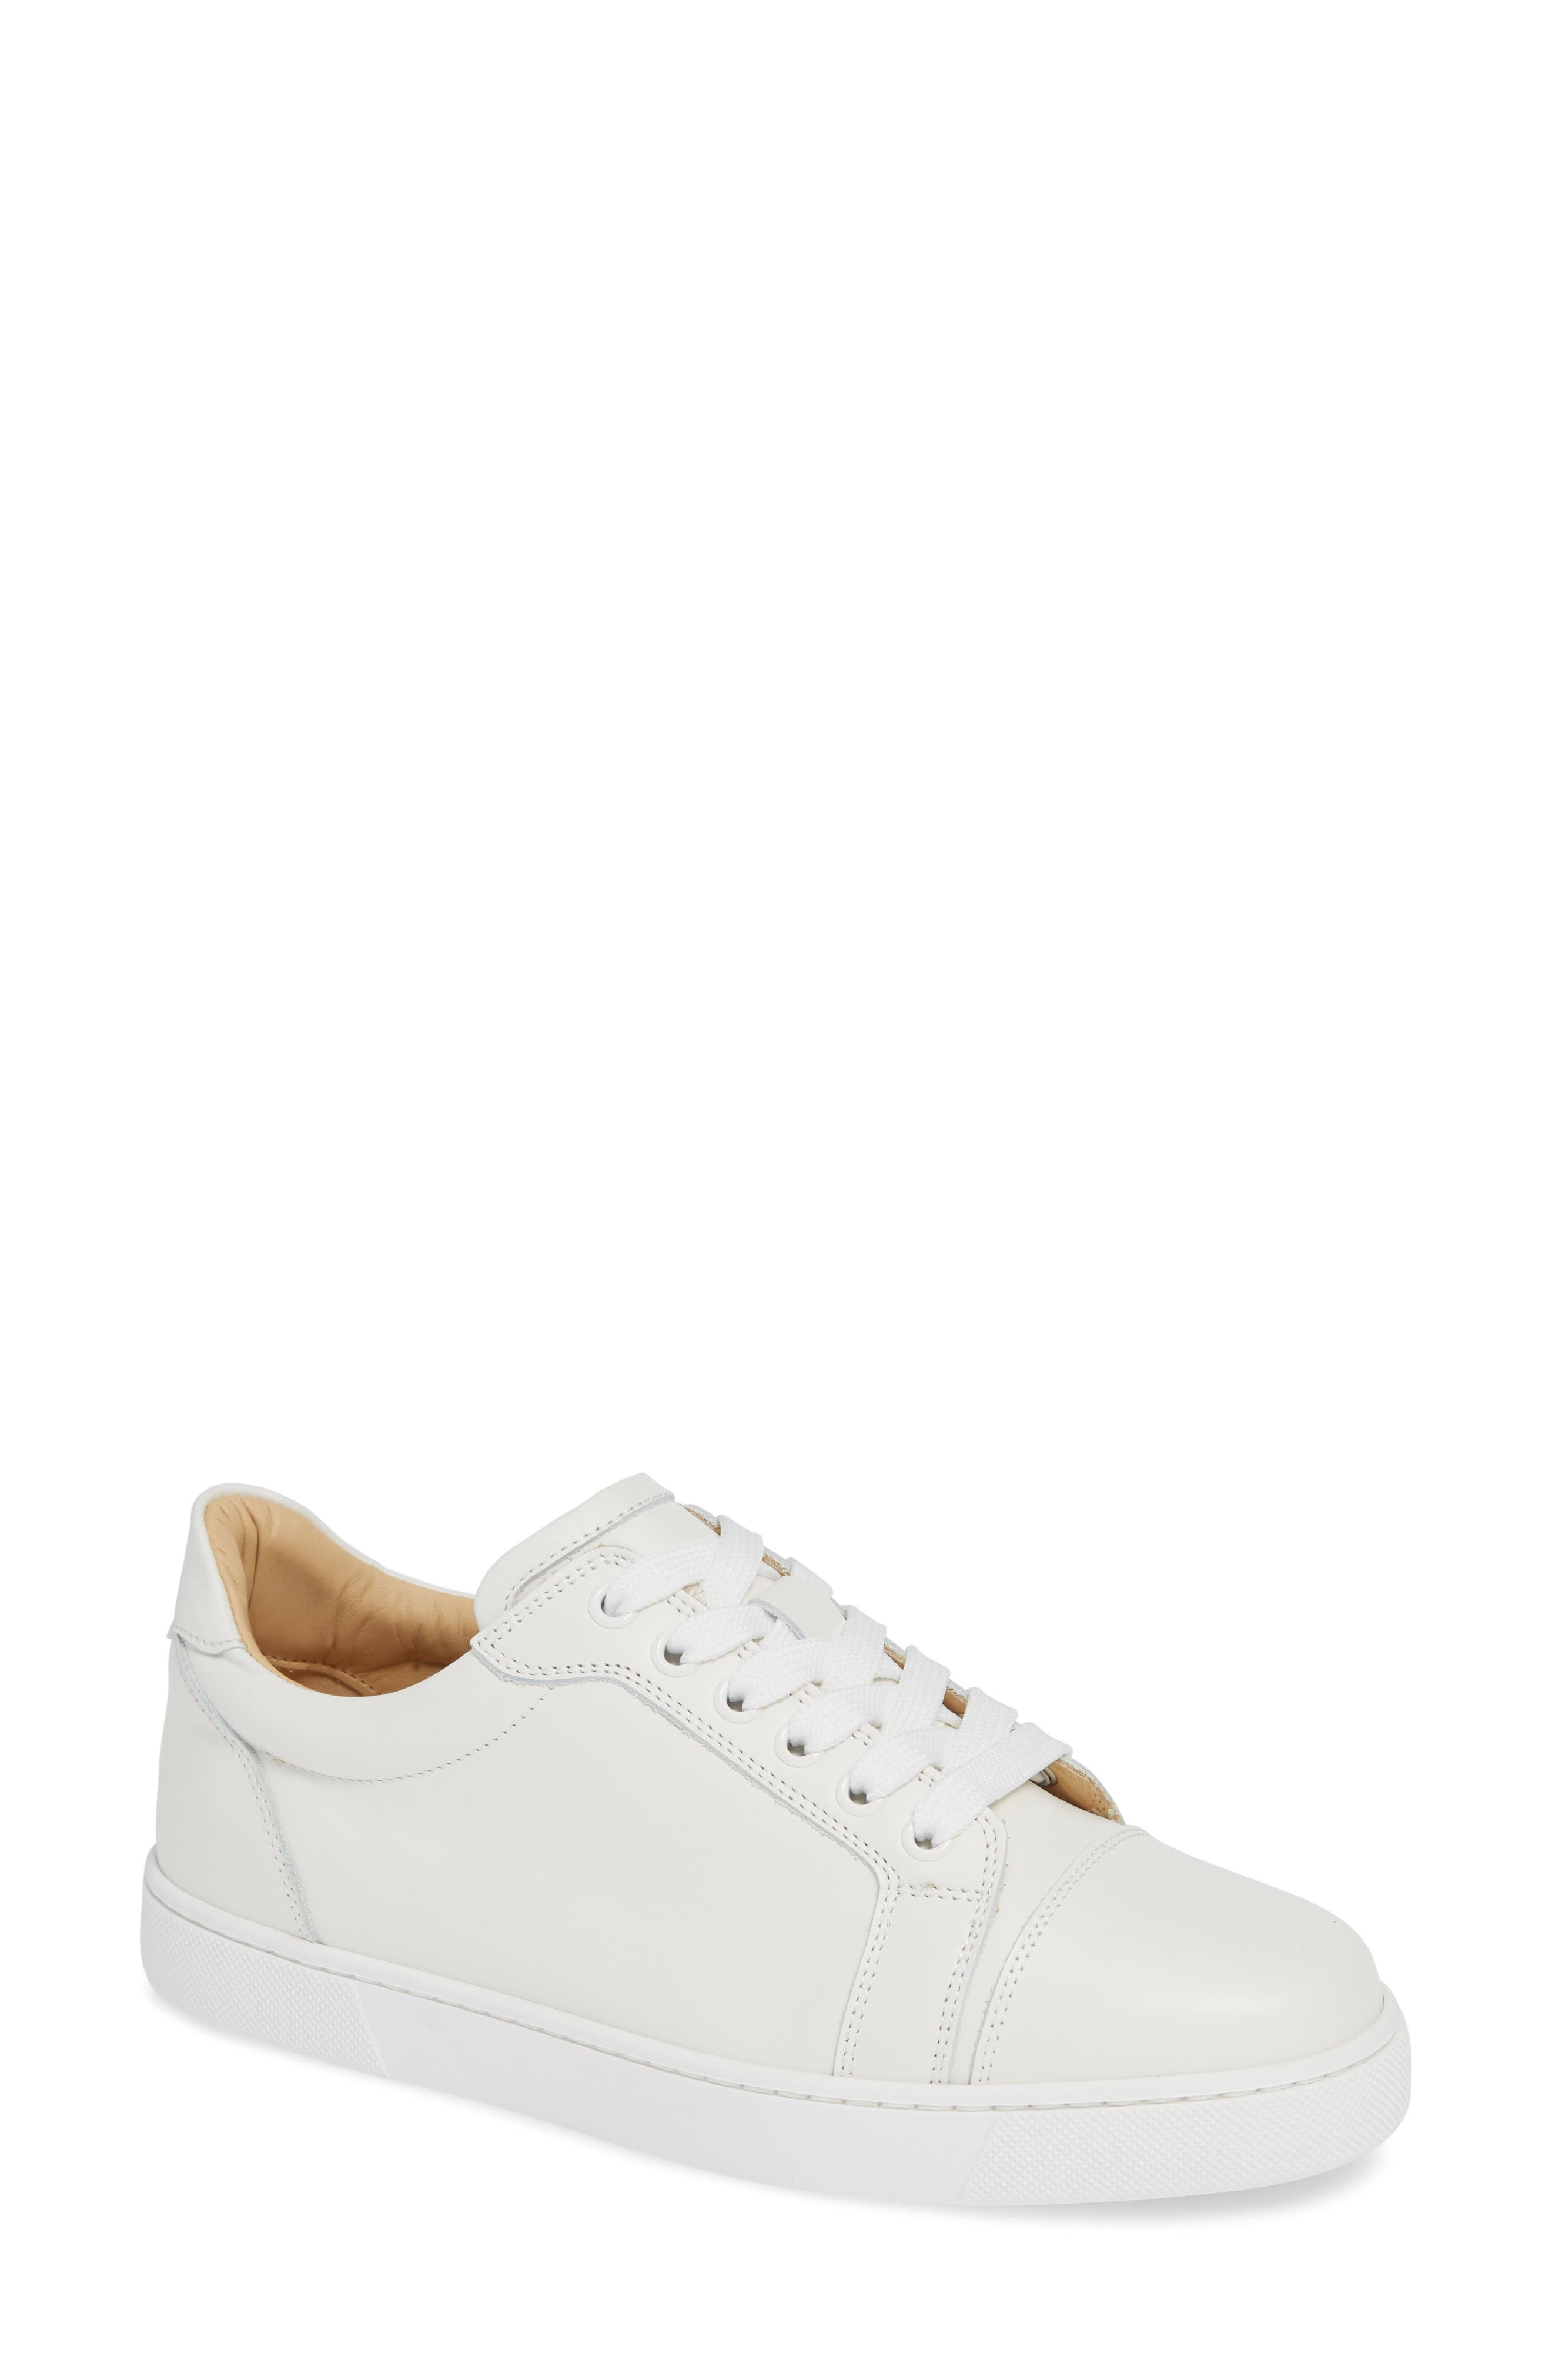 Veira Lace-Up Sneaker,                             Main thumbnail 1, color,                             SNOW WHITE